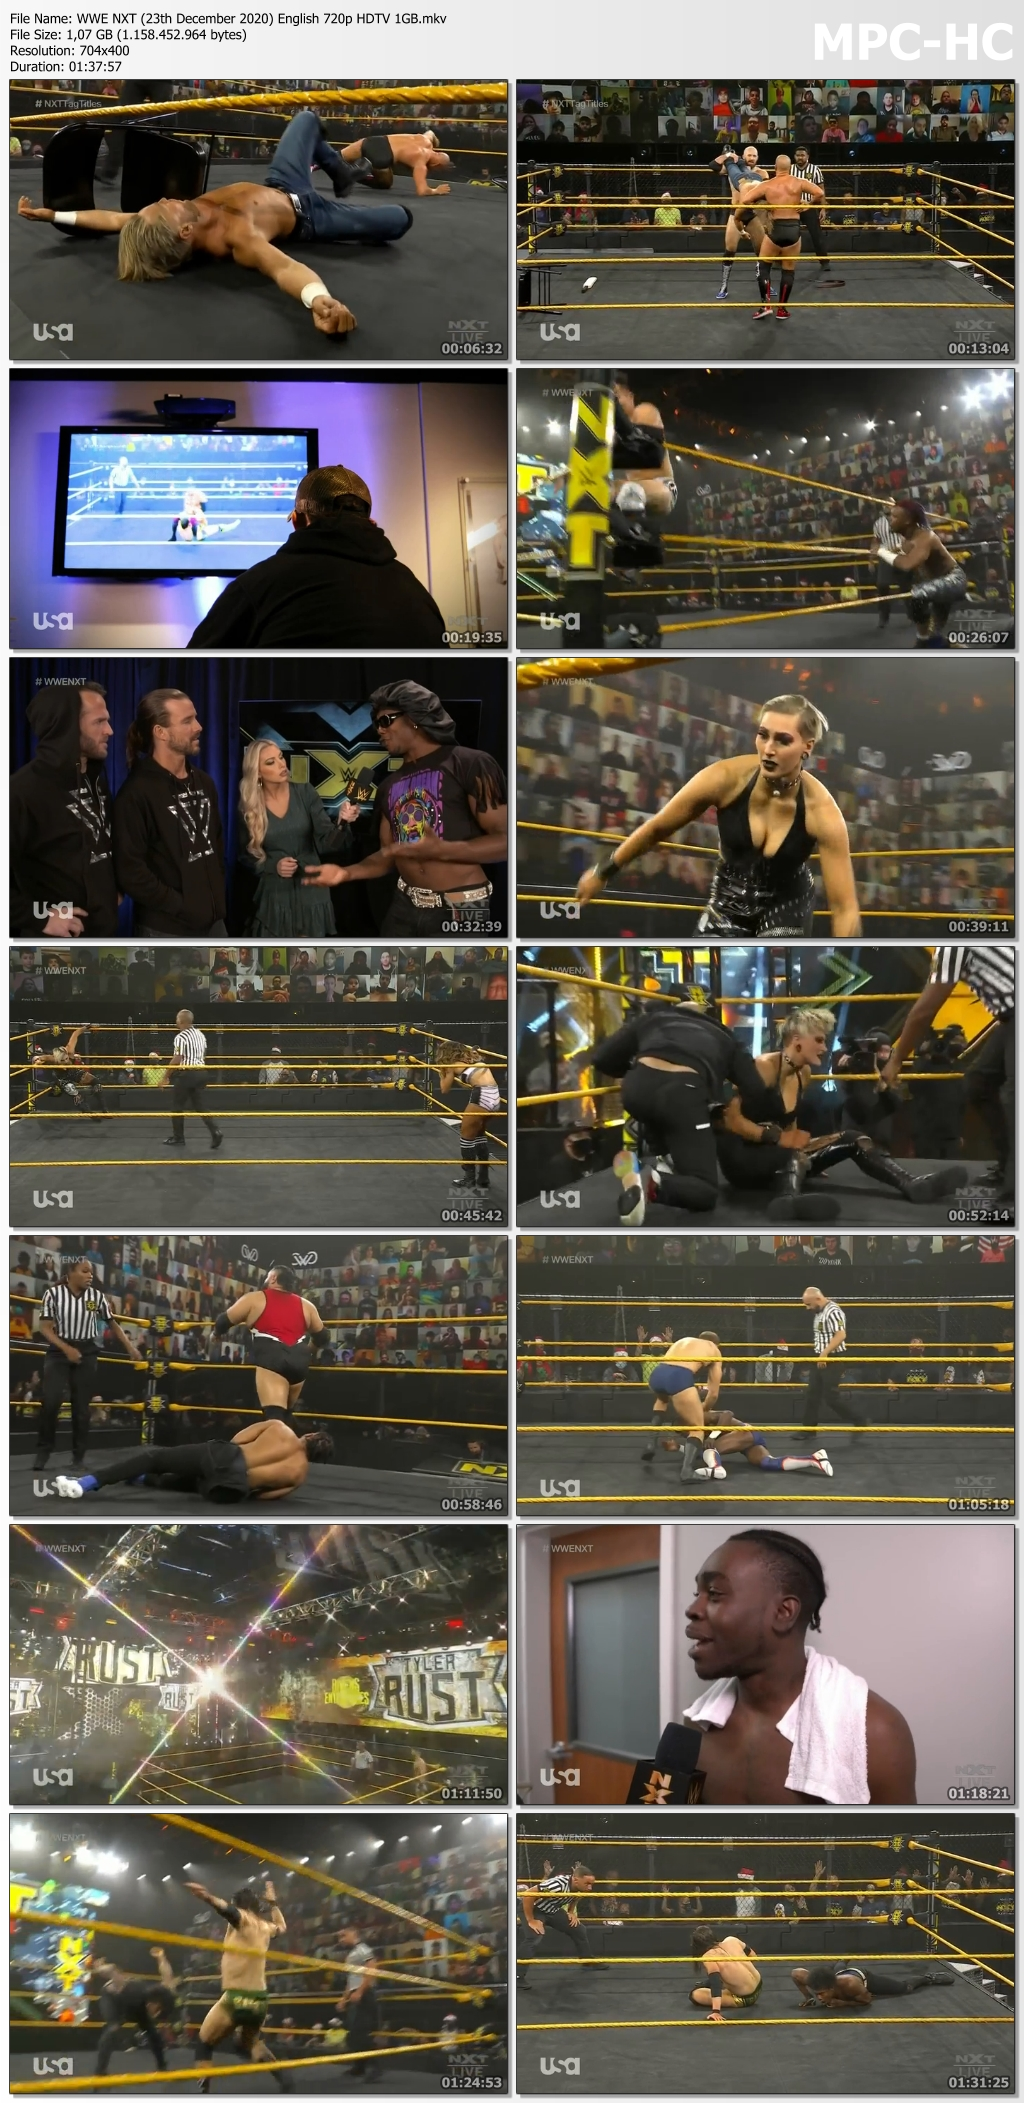 WWE-NXT-23th-December-2020-English-720p-HDTV-1-GB-mkv-thumbs